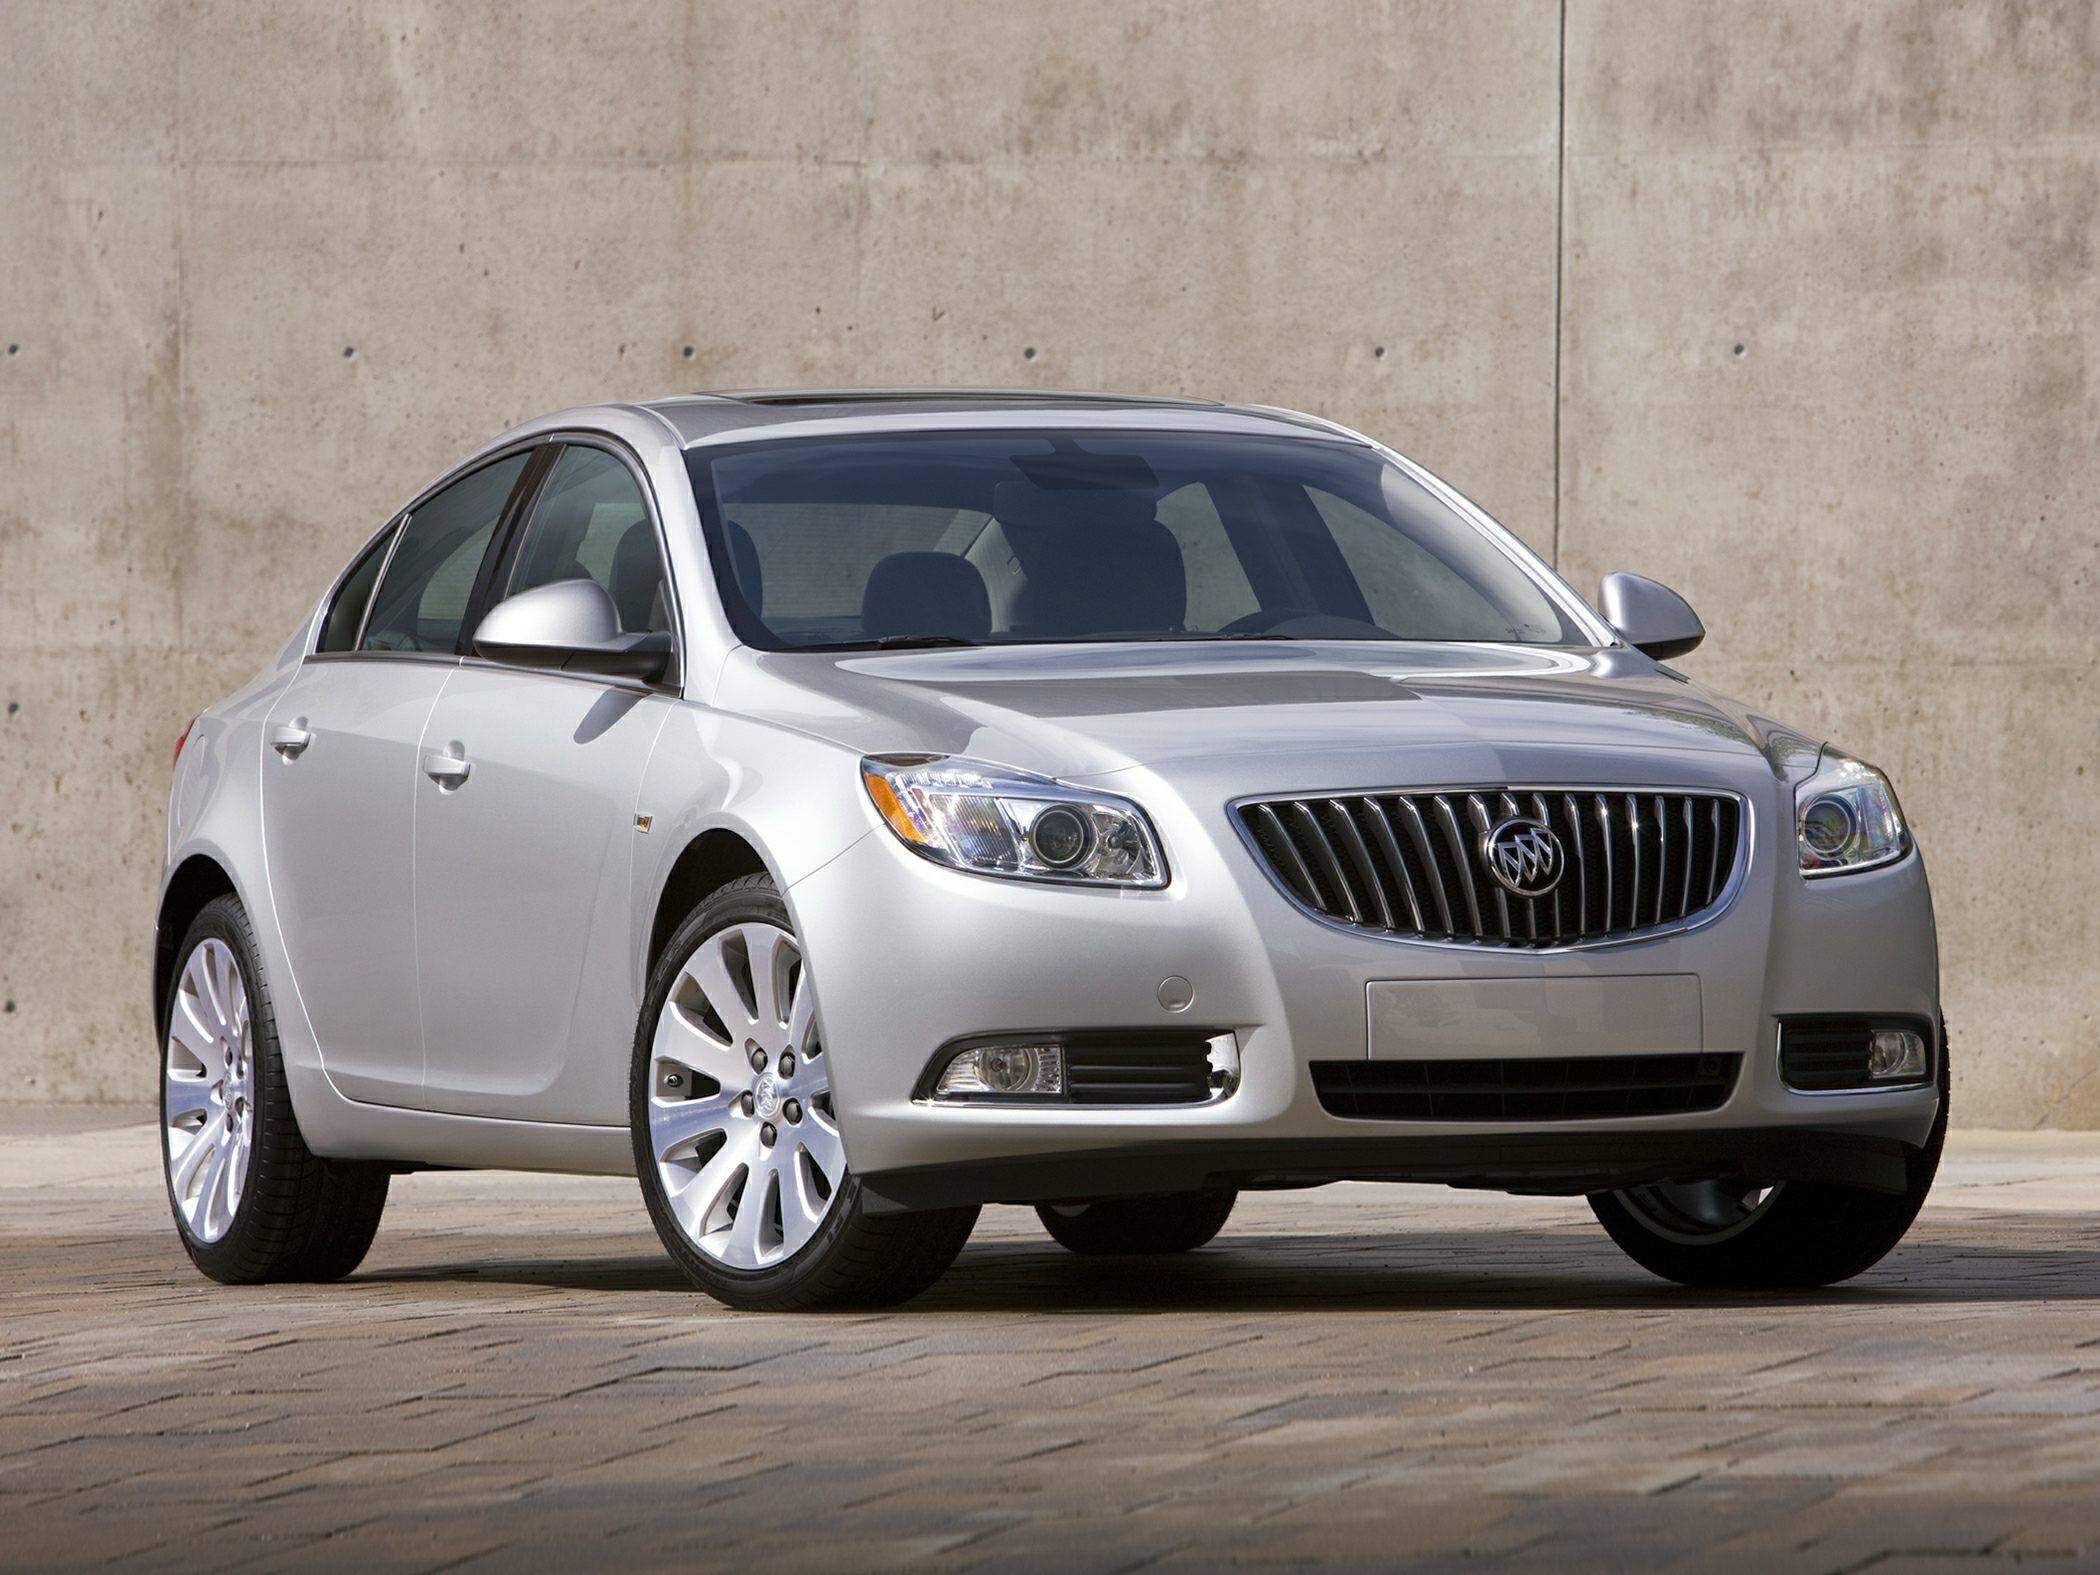 2013 Buick Regal Power Tilt-Sliding Sunroof wSunshade Turbocharged Wow Where do I start Pleas